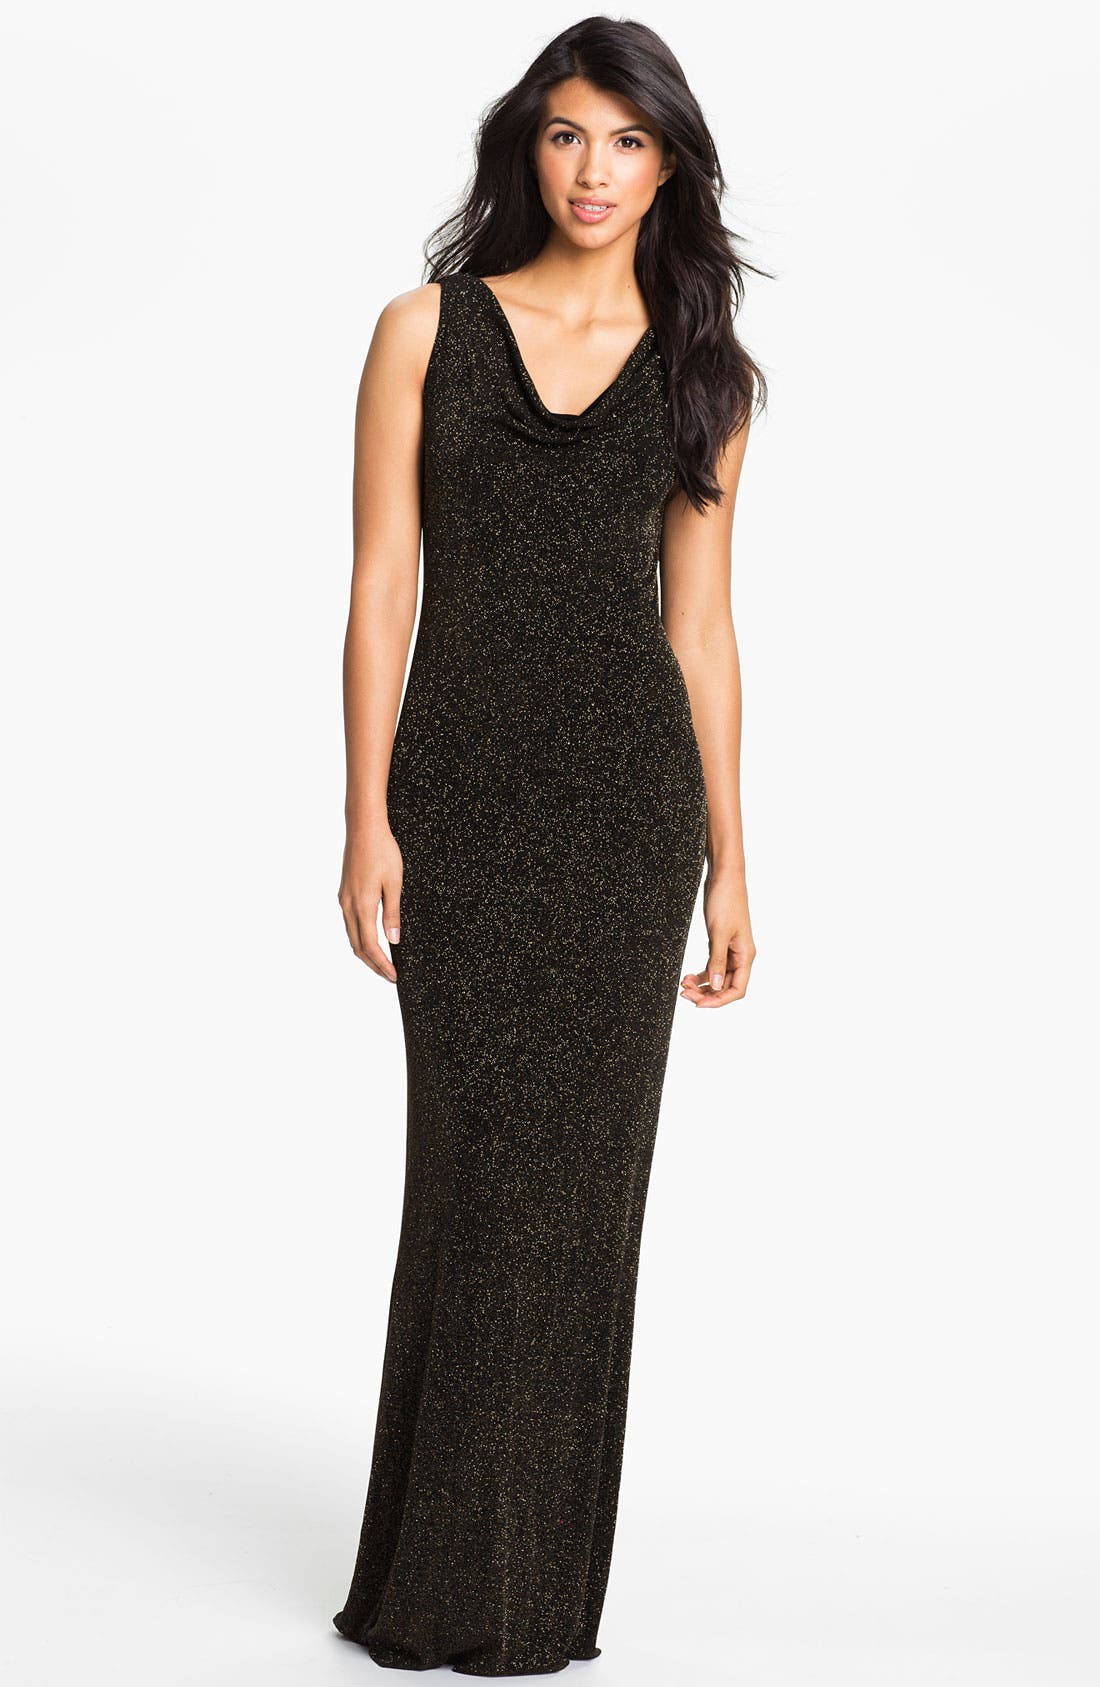 Main Image - Adrianna Papell Drape Back Glitter Jersey Gown